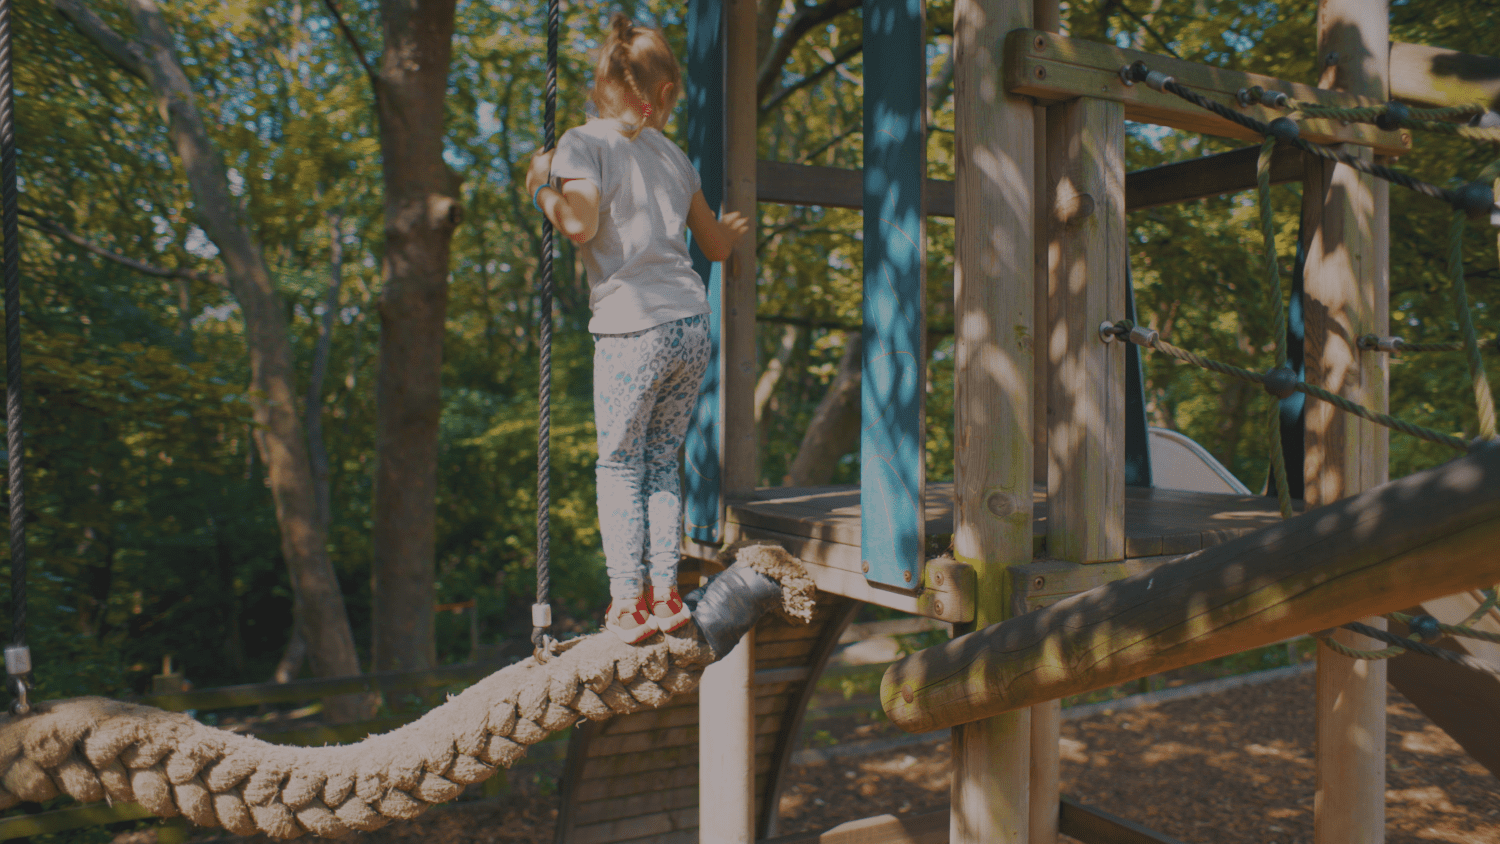 Photograph of a child playing on the playground at Flatts Lane Woodland Country Park